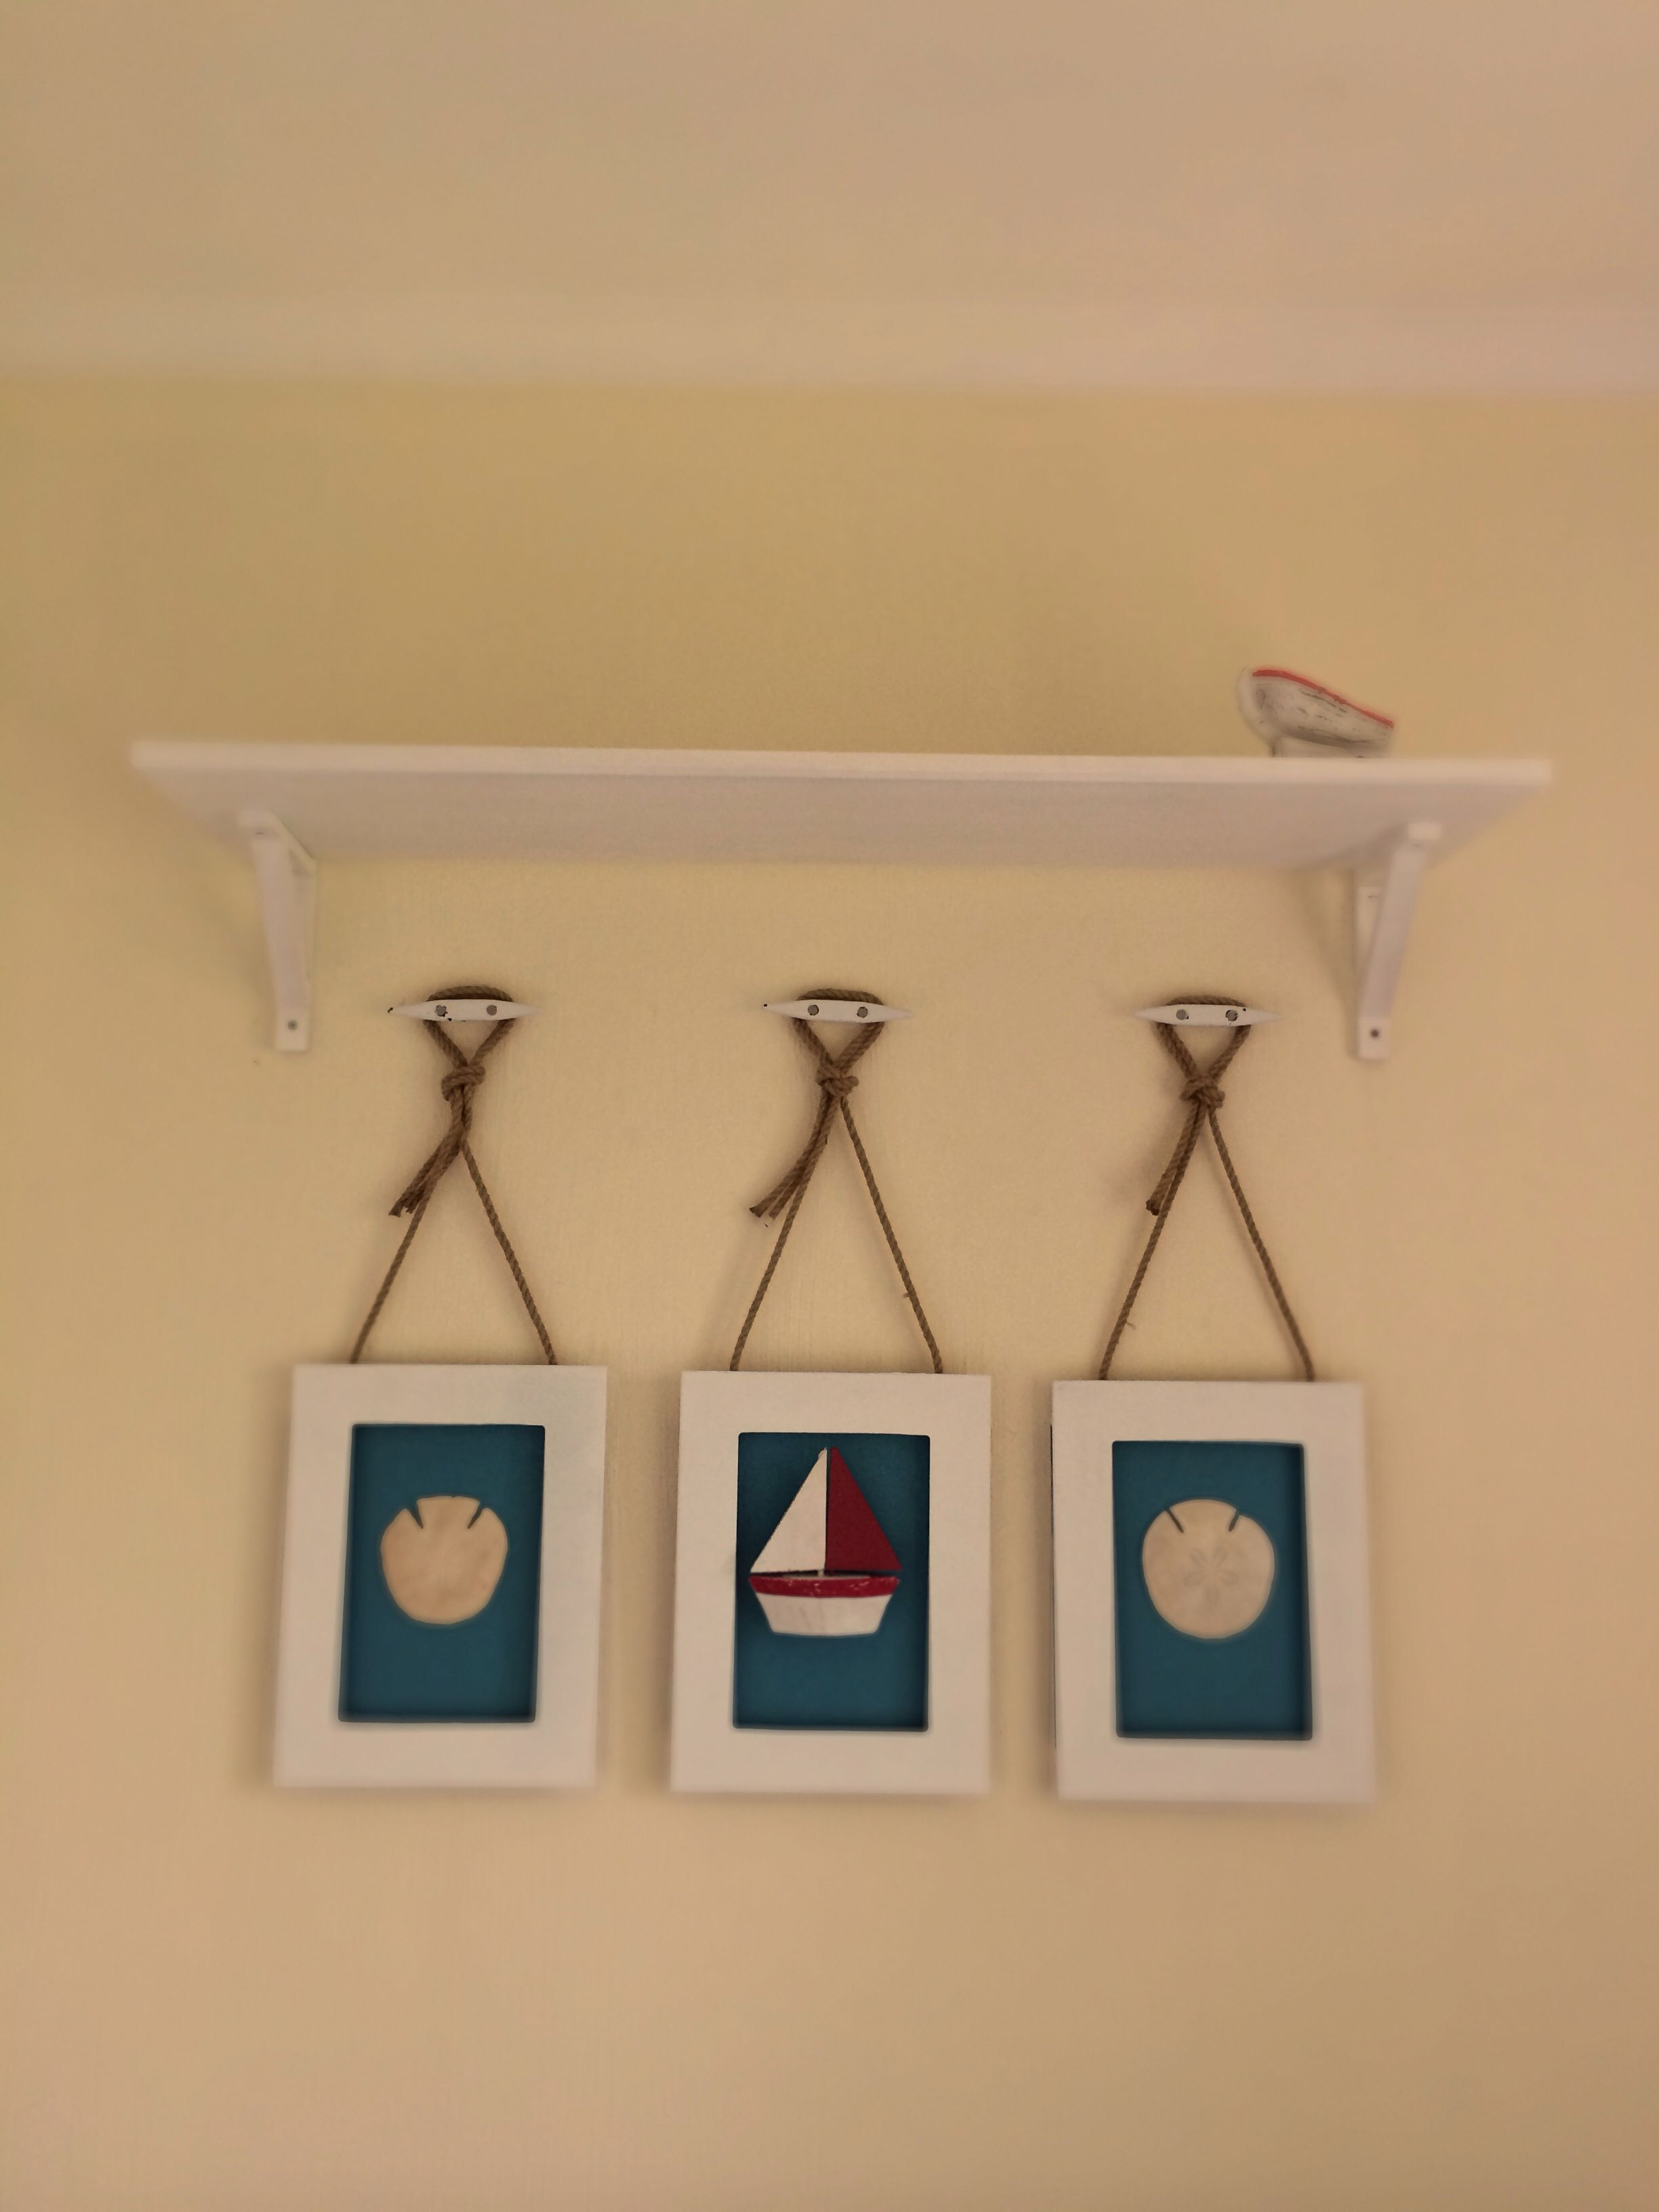 home decor captains quamoc lantern lighting wall image bedroom best concept great with clic table lamp nautical photo kids